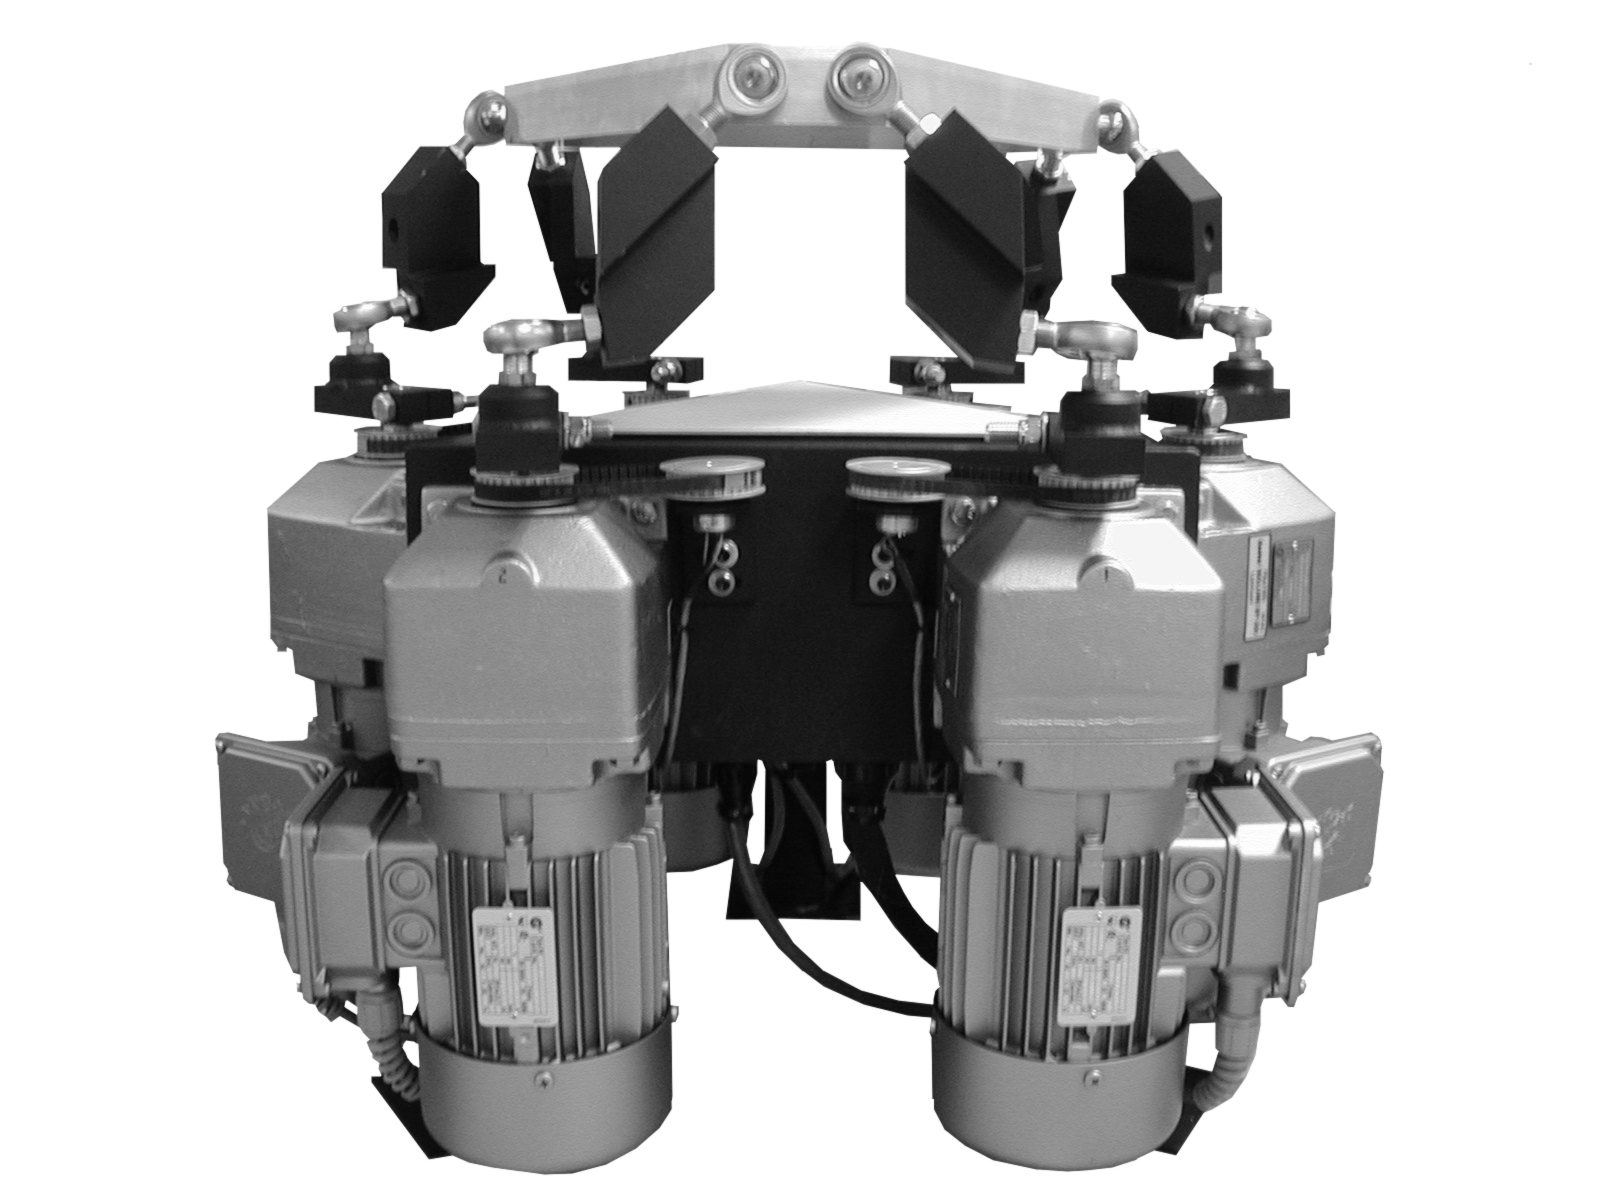 Six Axis (6DOF) Motion Base Platform Systems